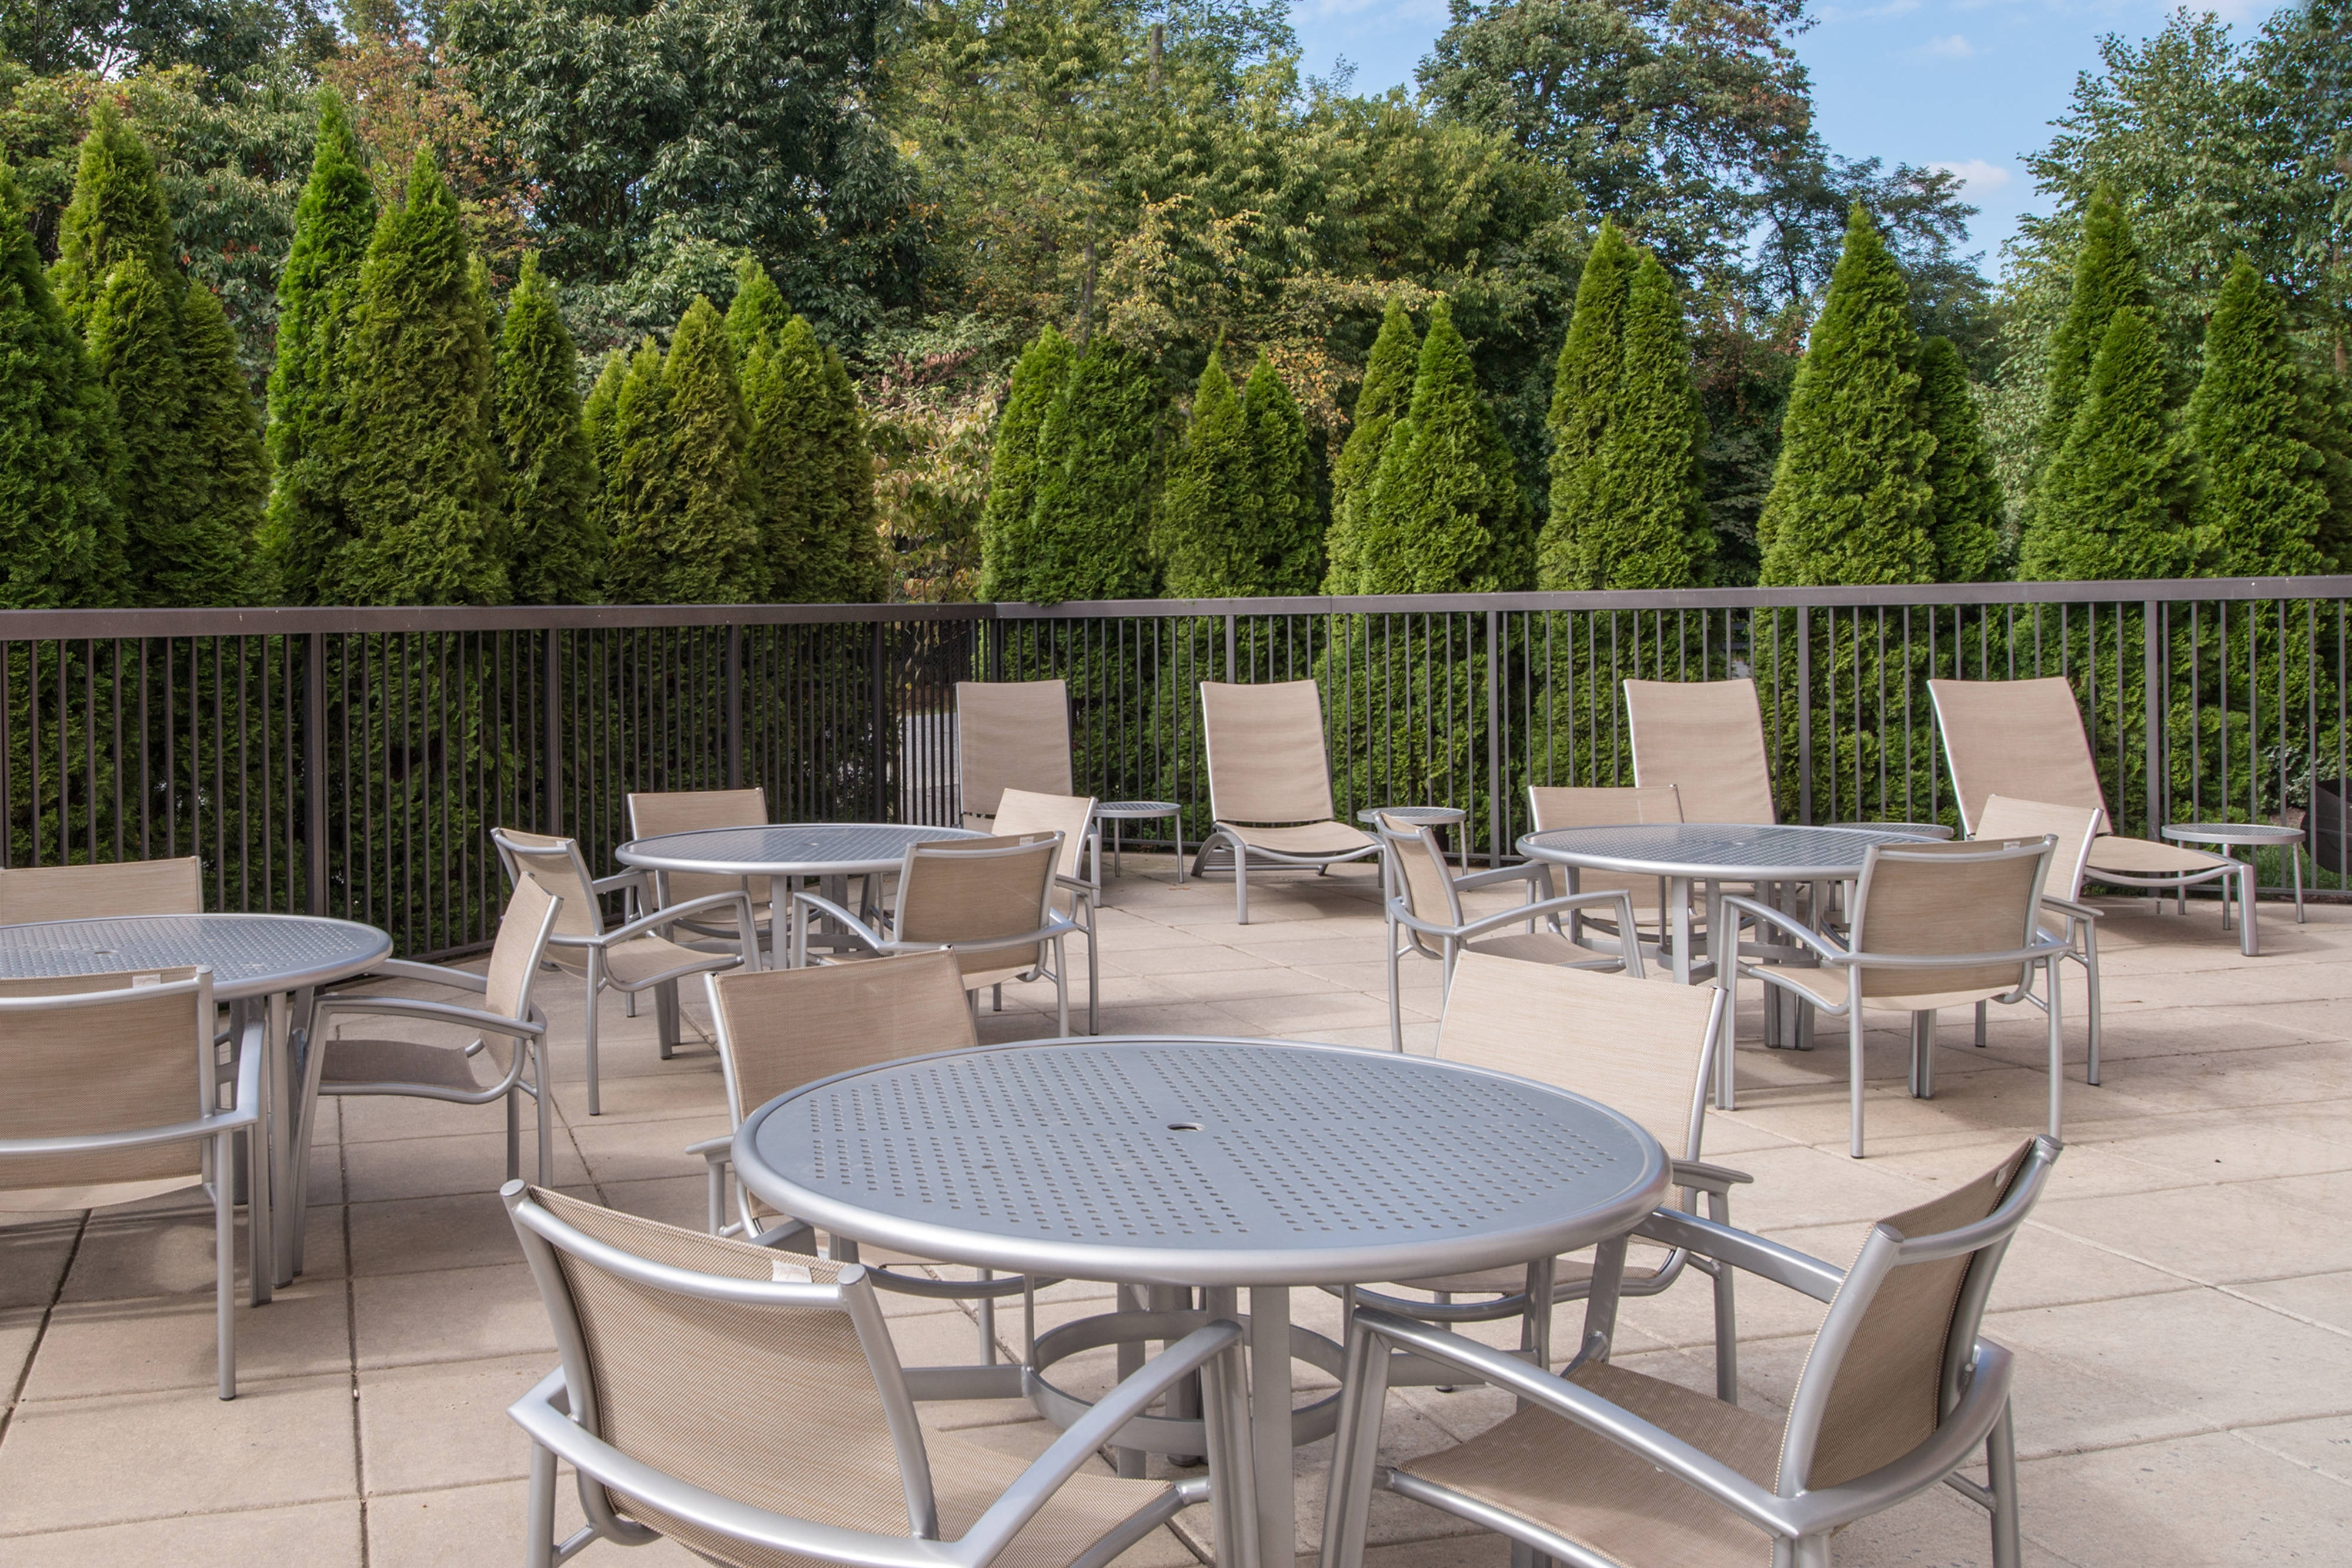 SpringHill Suites Hagerstown Hotel Patio